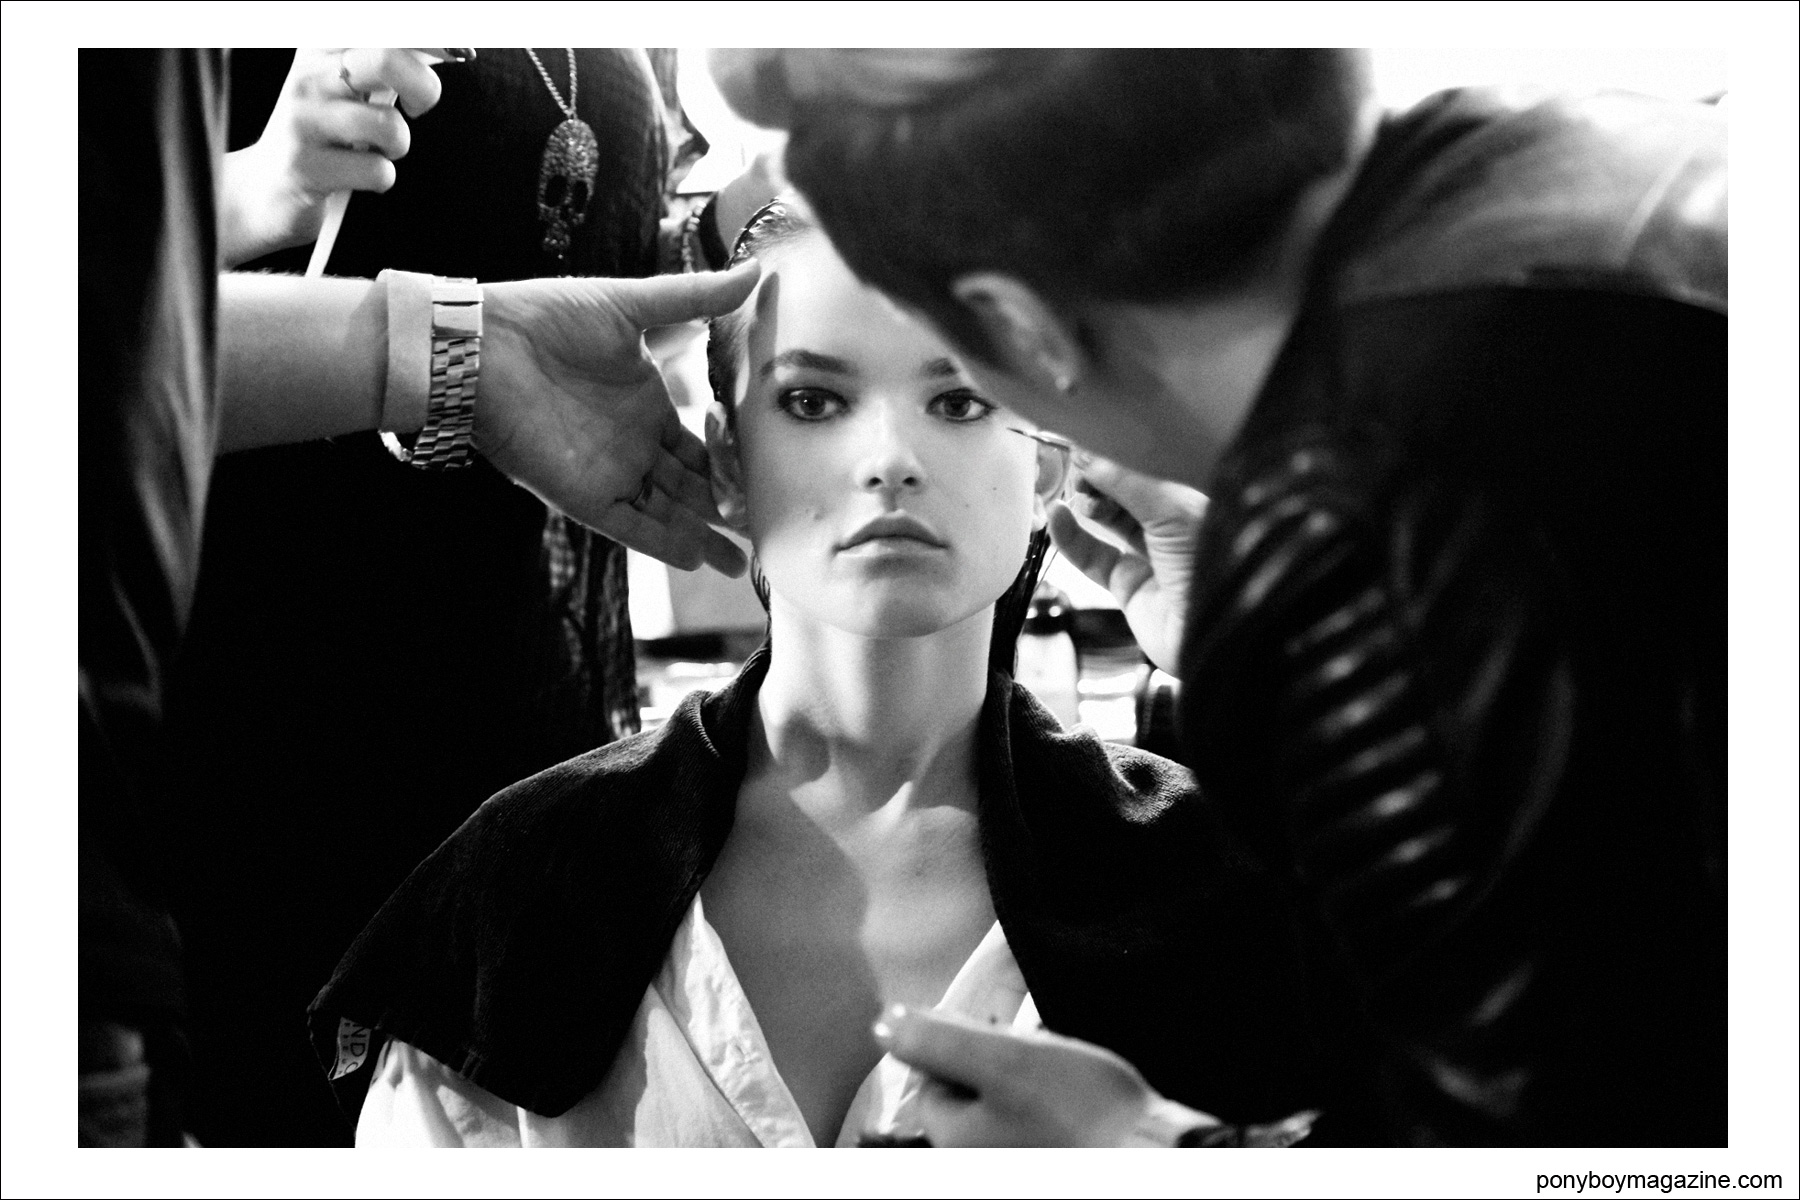 A model backstage during makeup at Sophie Theallet S/S15 collection. Photograph for Ponyboy Magazine by Alexander Thompson.